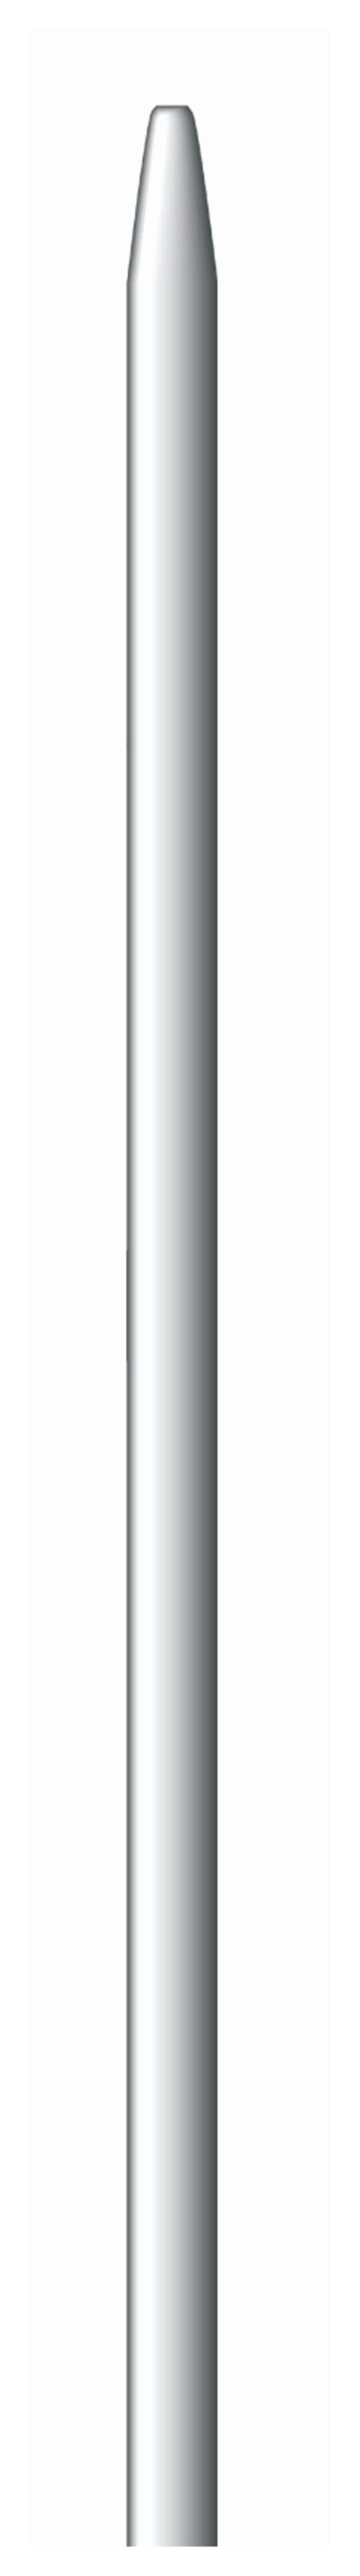 Trajan™Replacement Plungers For syringe models SG-001955, SG-001957; 5uL capacity Trajan™Replacement Plungers